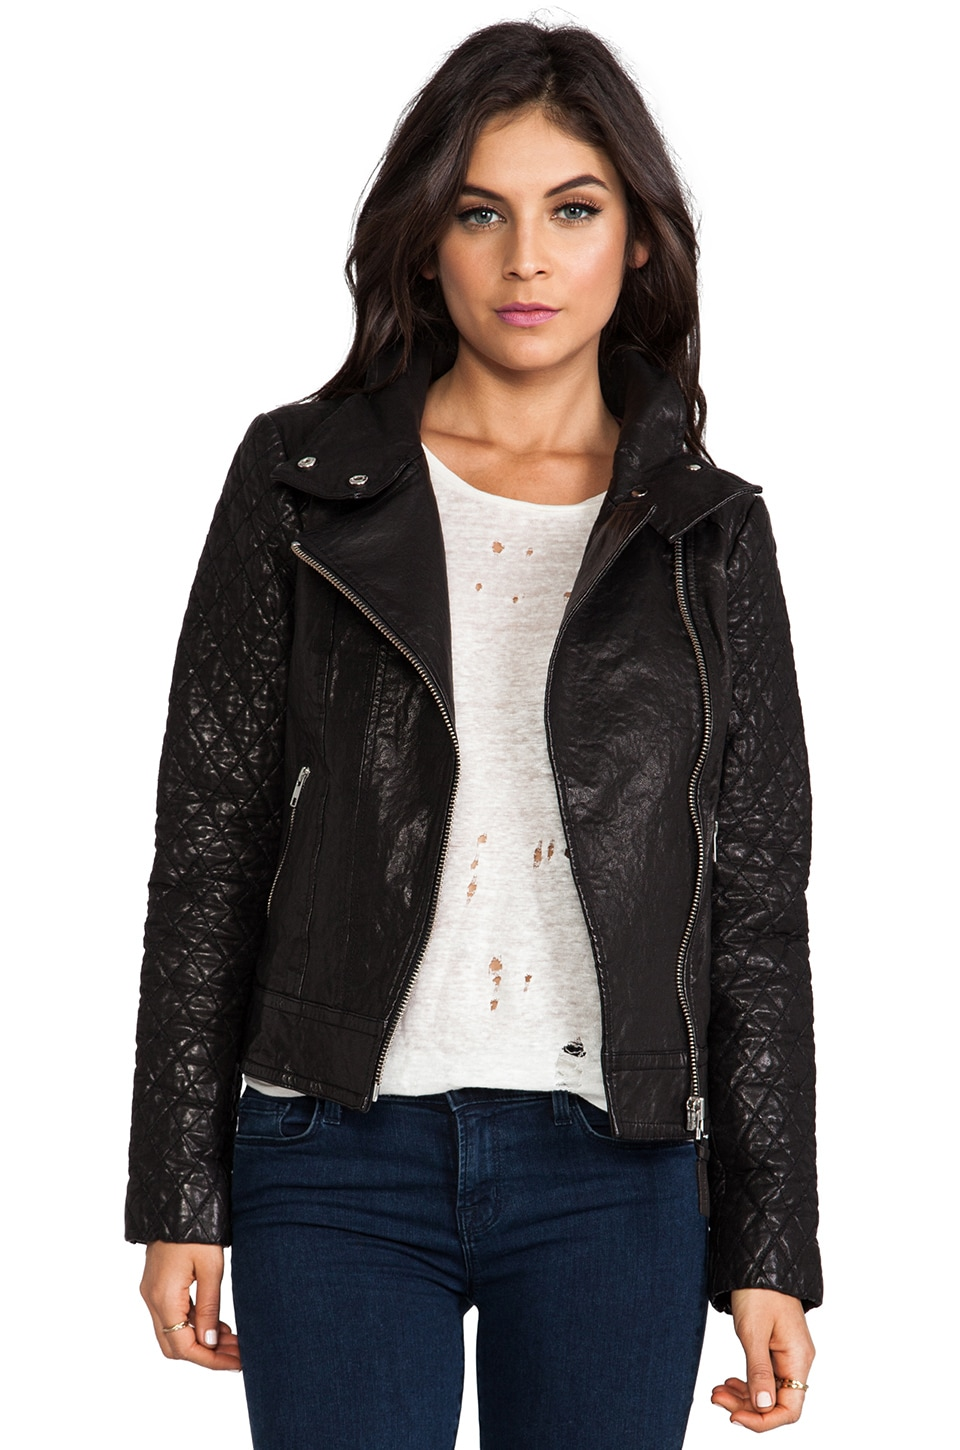 Mackage Jimmie Distressed Leather Jacket in Black